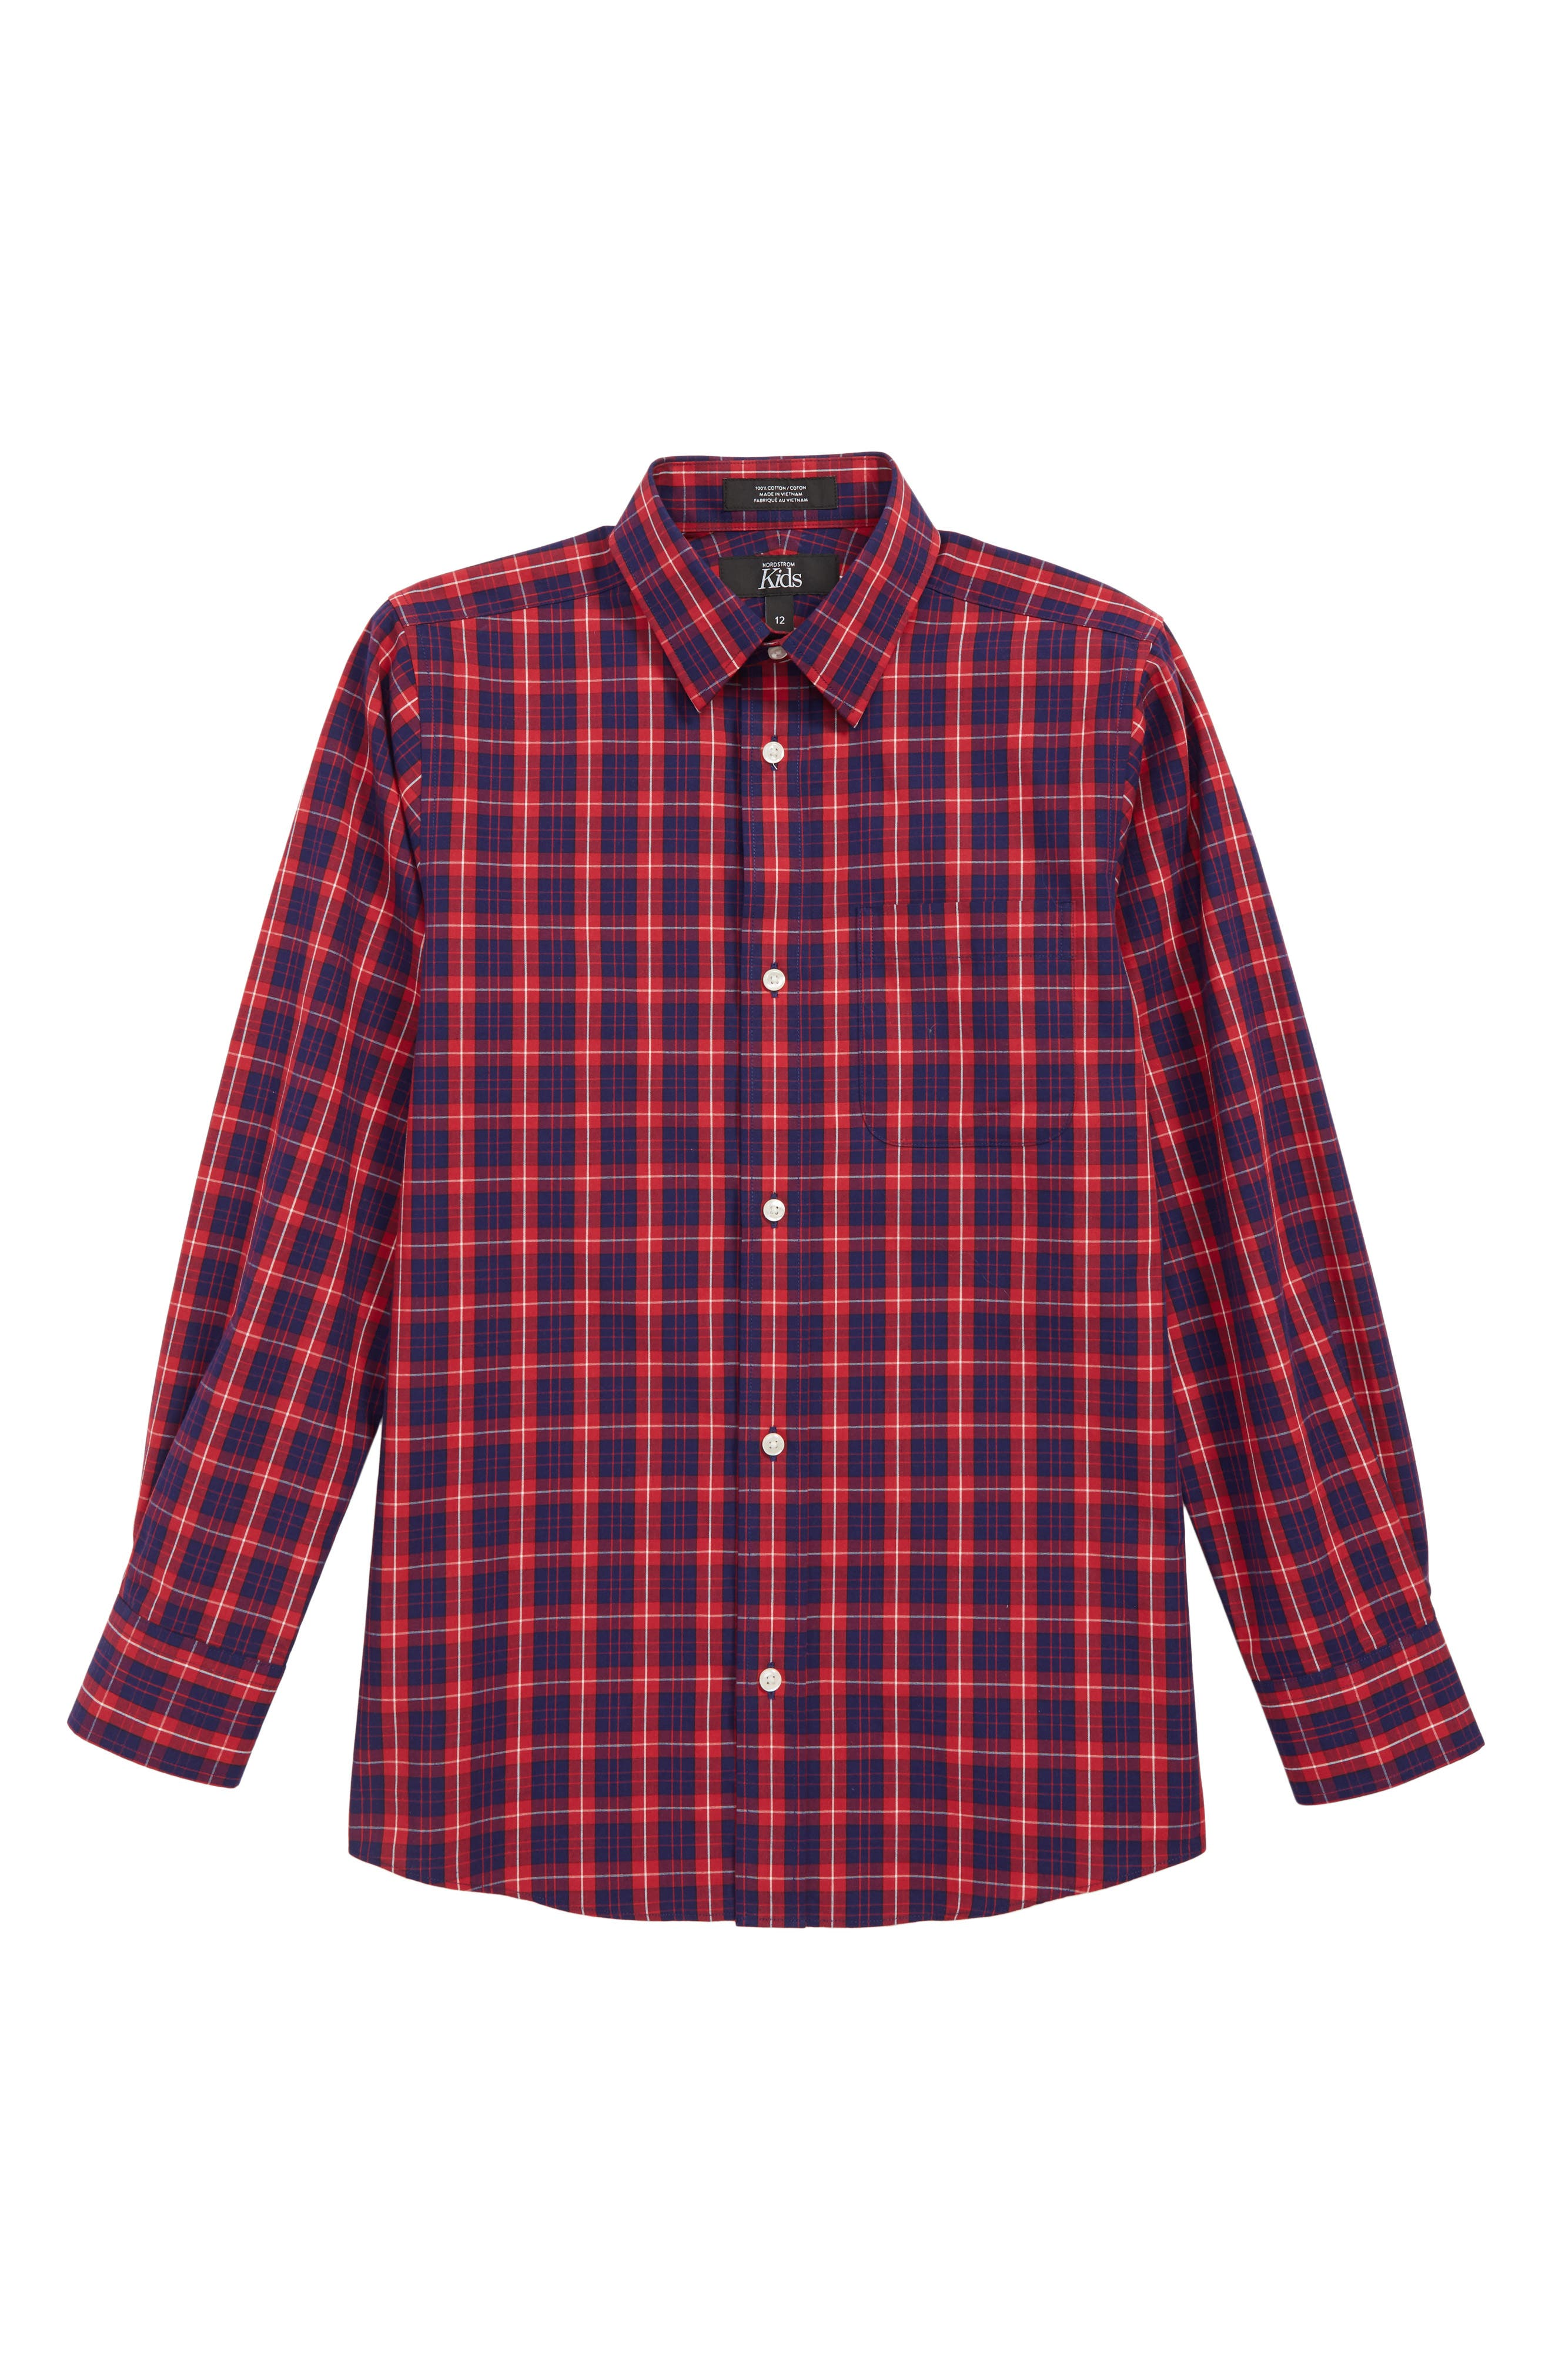 Tartan Dress Shirt,                             Main thumbnail 1, color,                             RED SAGE- NAVY TARTAN